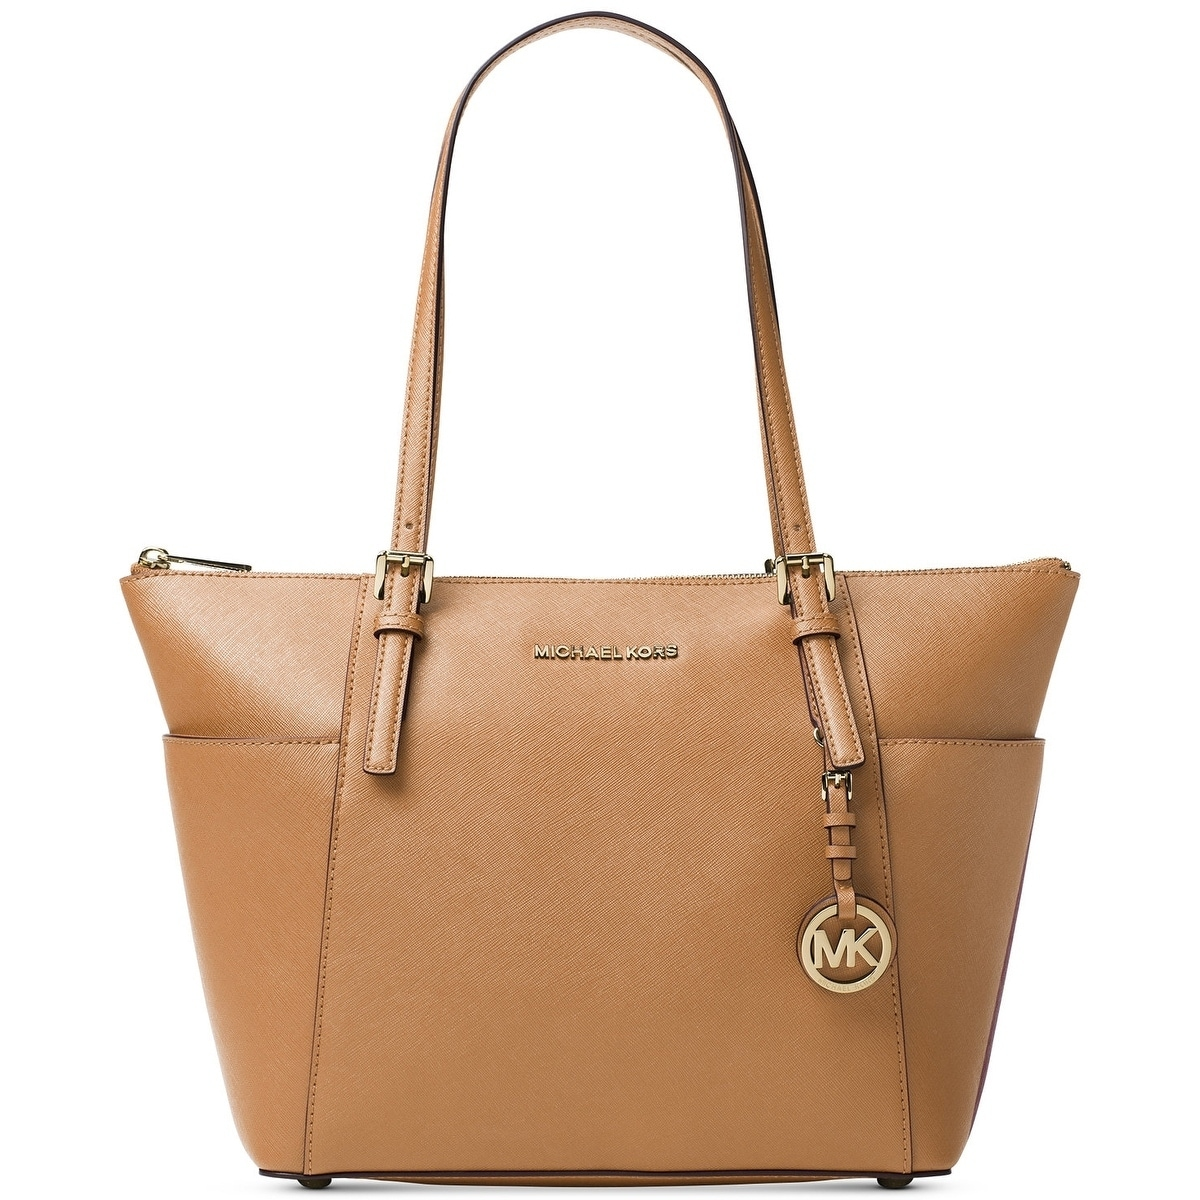 28e8aa50b6f089 Michael Kors Jet Set Top-Zip Saffiano Leather - Tote - Acorn -  30F2GTTT8L-532